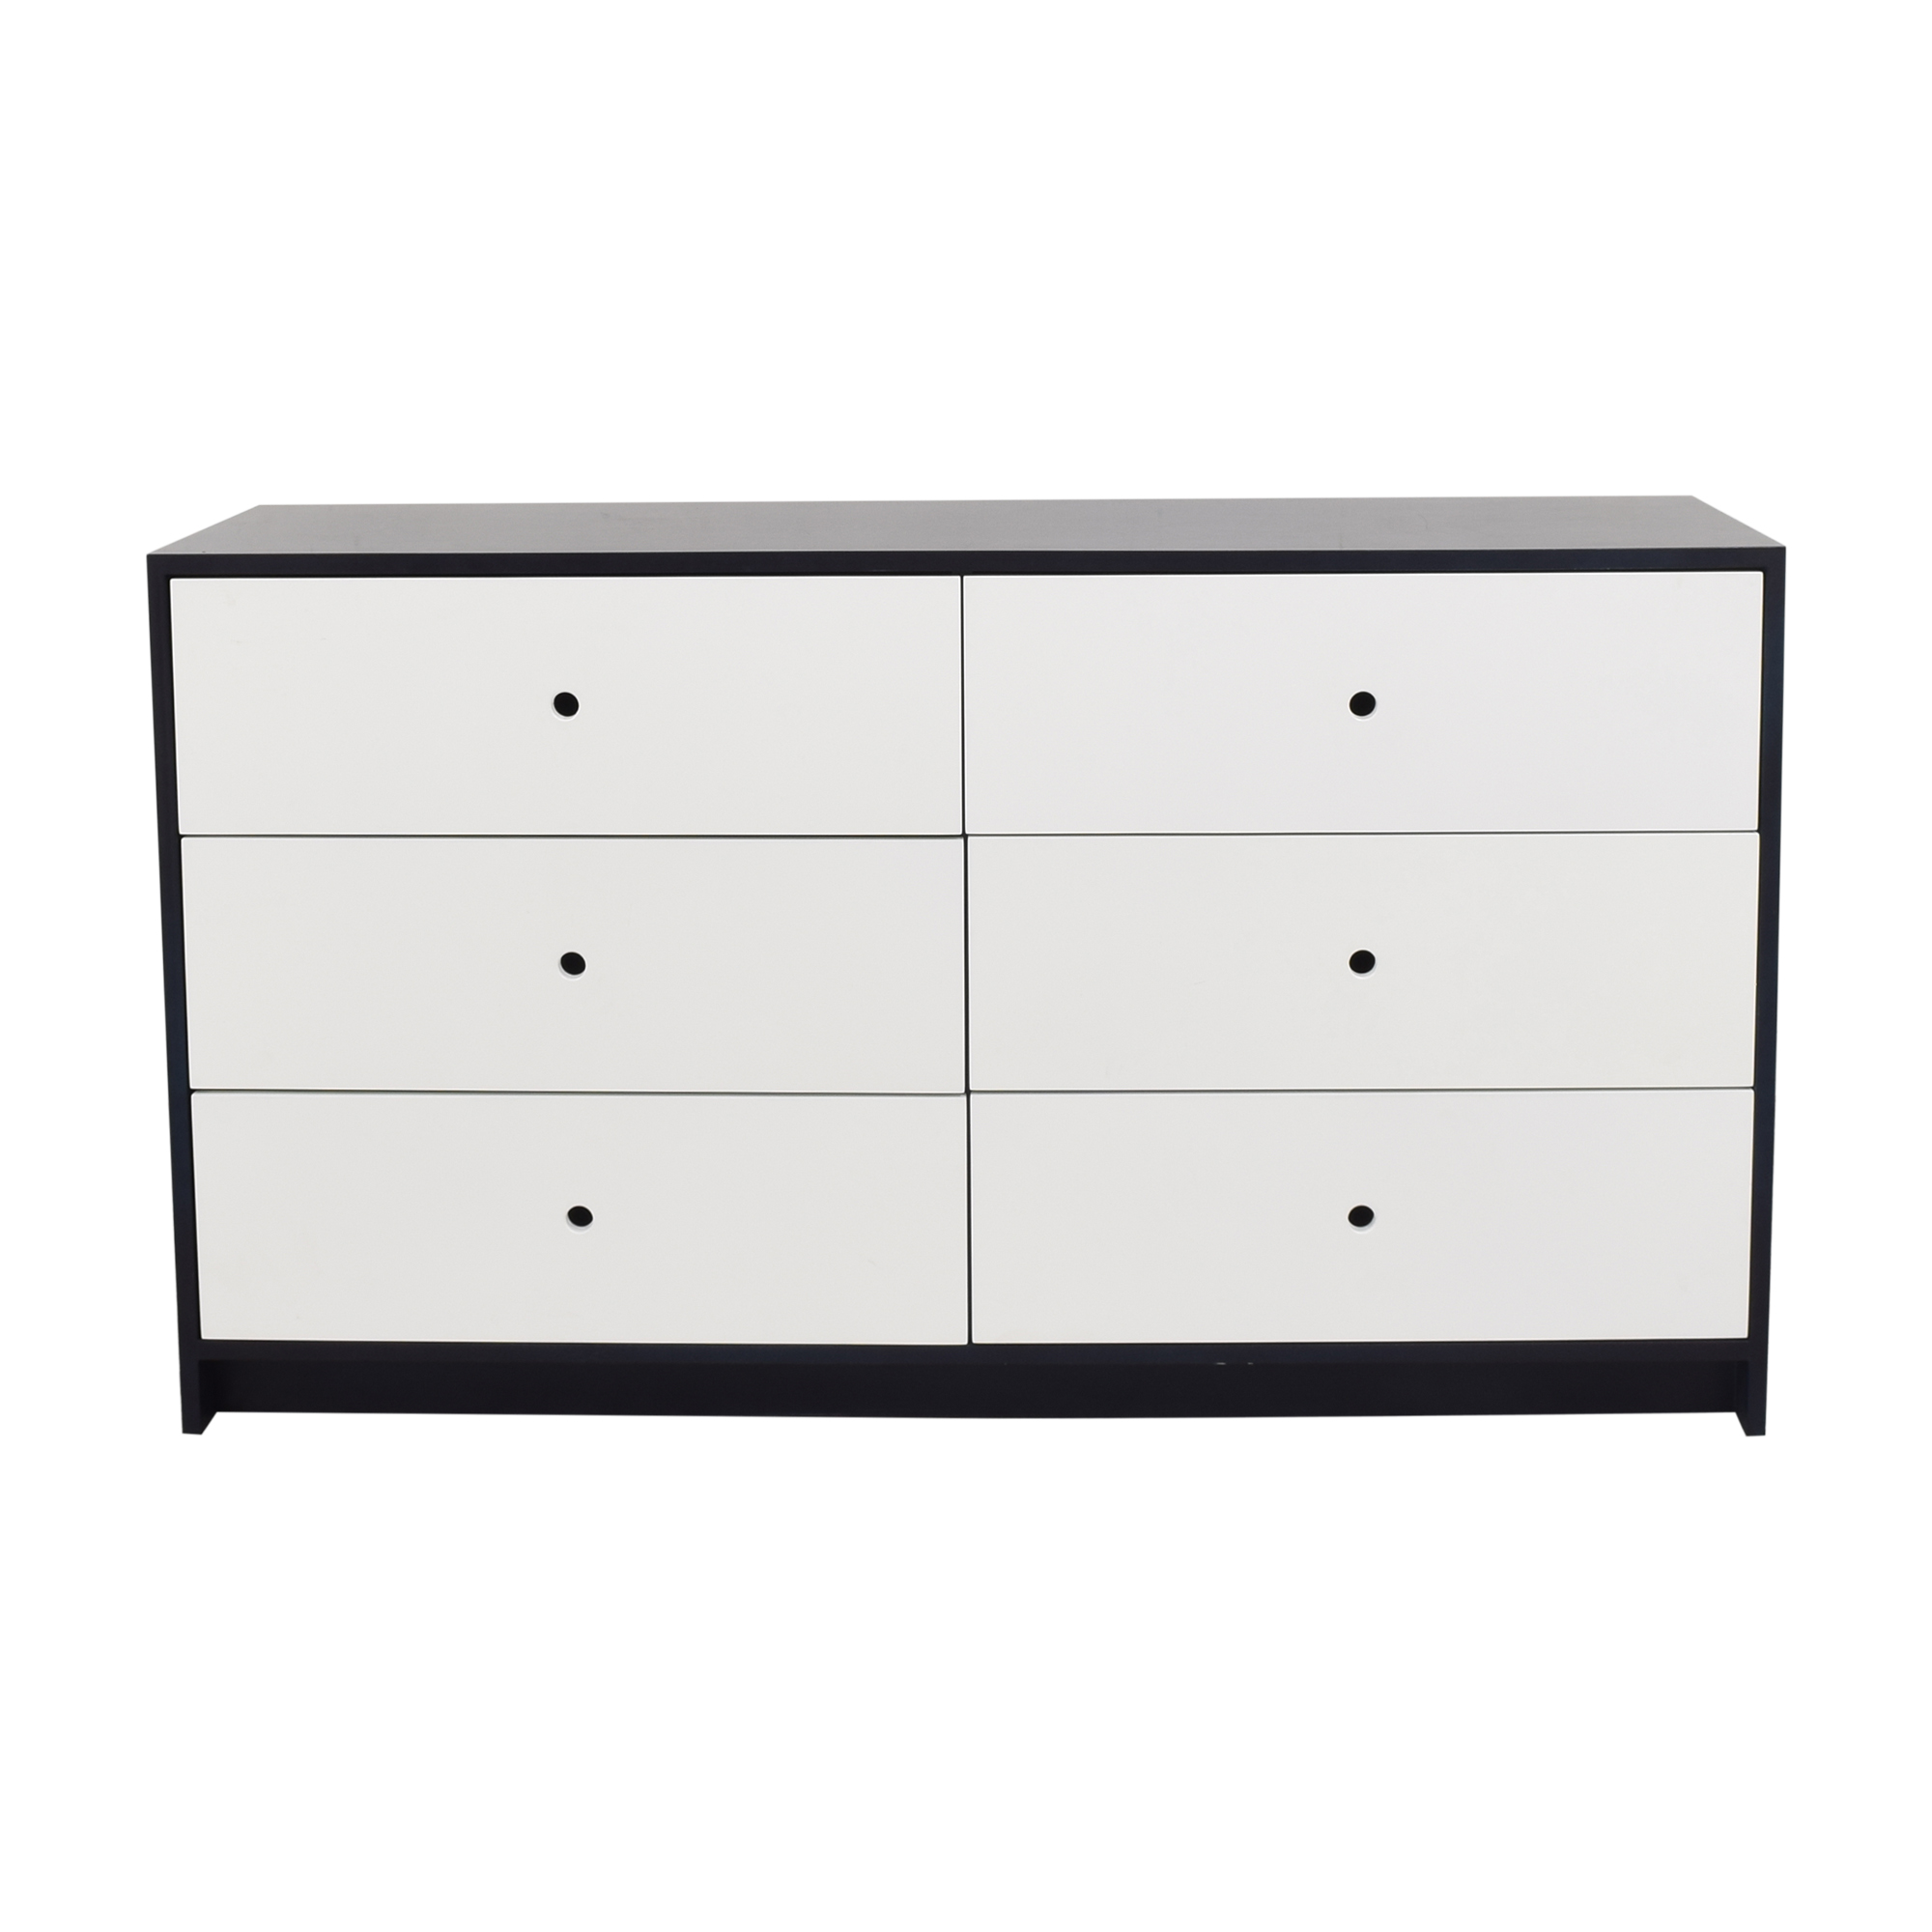 ducduc Parker Six Drawer Dresser with Changing Tray ducduc